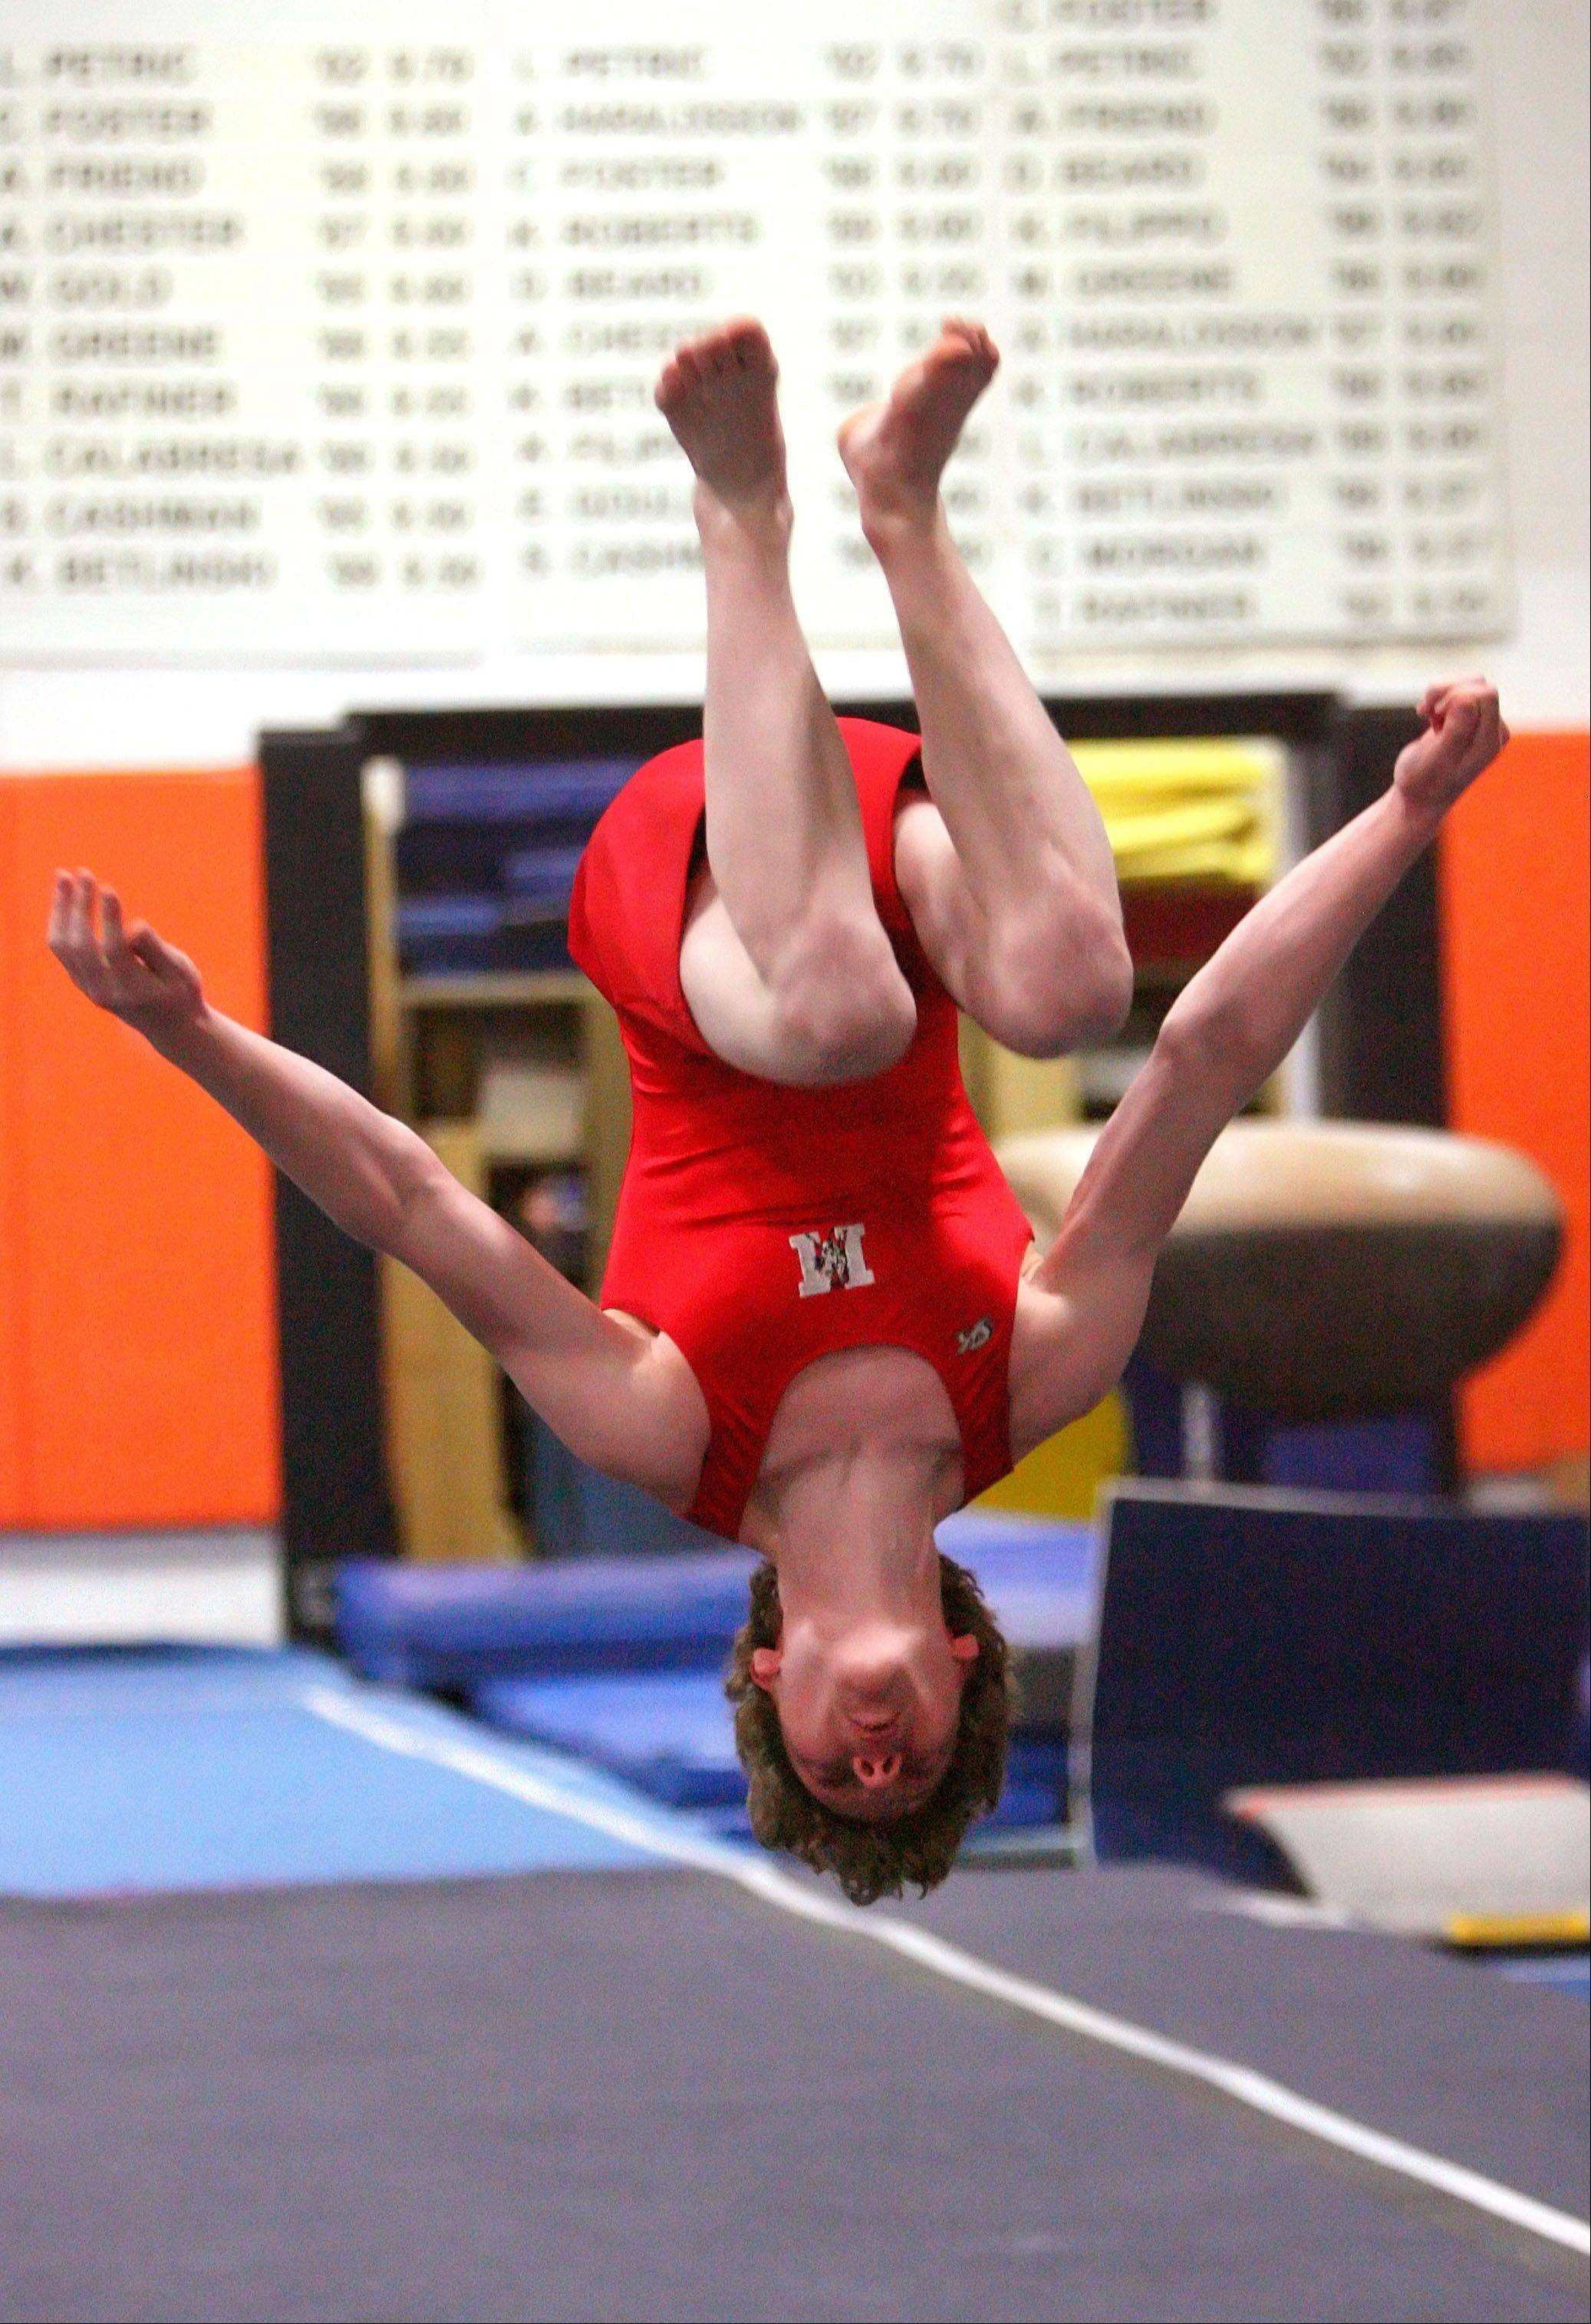 Mundelein's Jacob Petri competes on the floor exercise Tuesday at Libertyville.